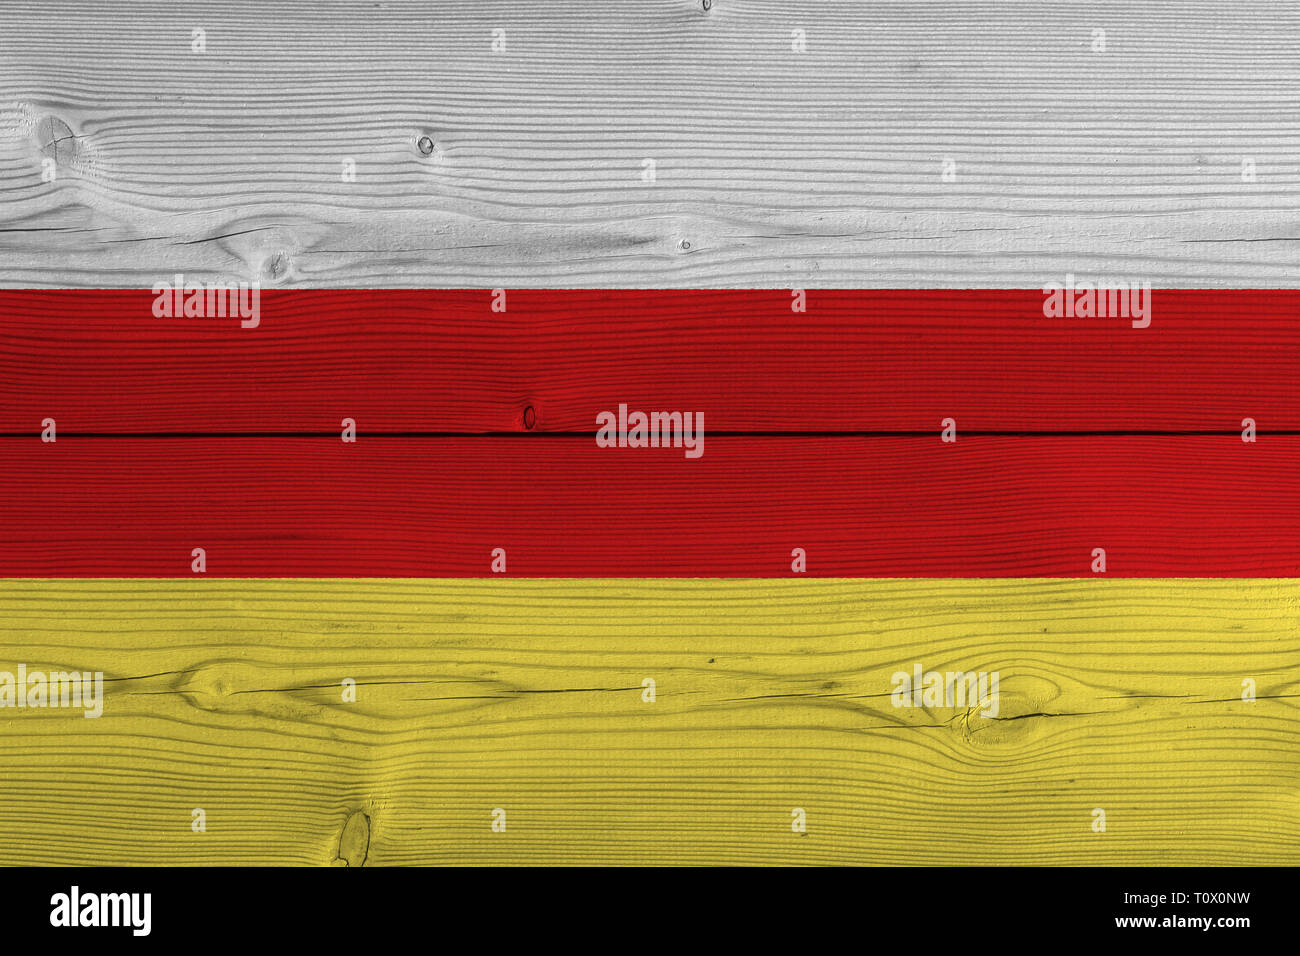 south ossetia flag painted on old wood plank - Stock Image